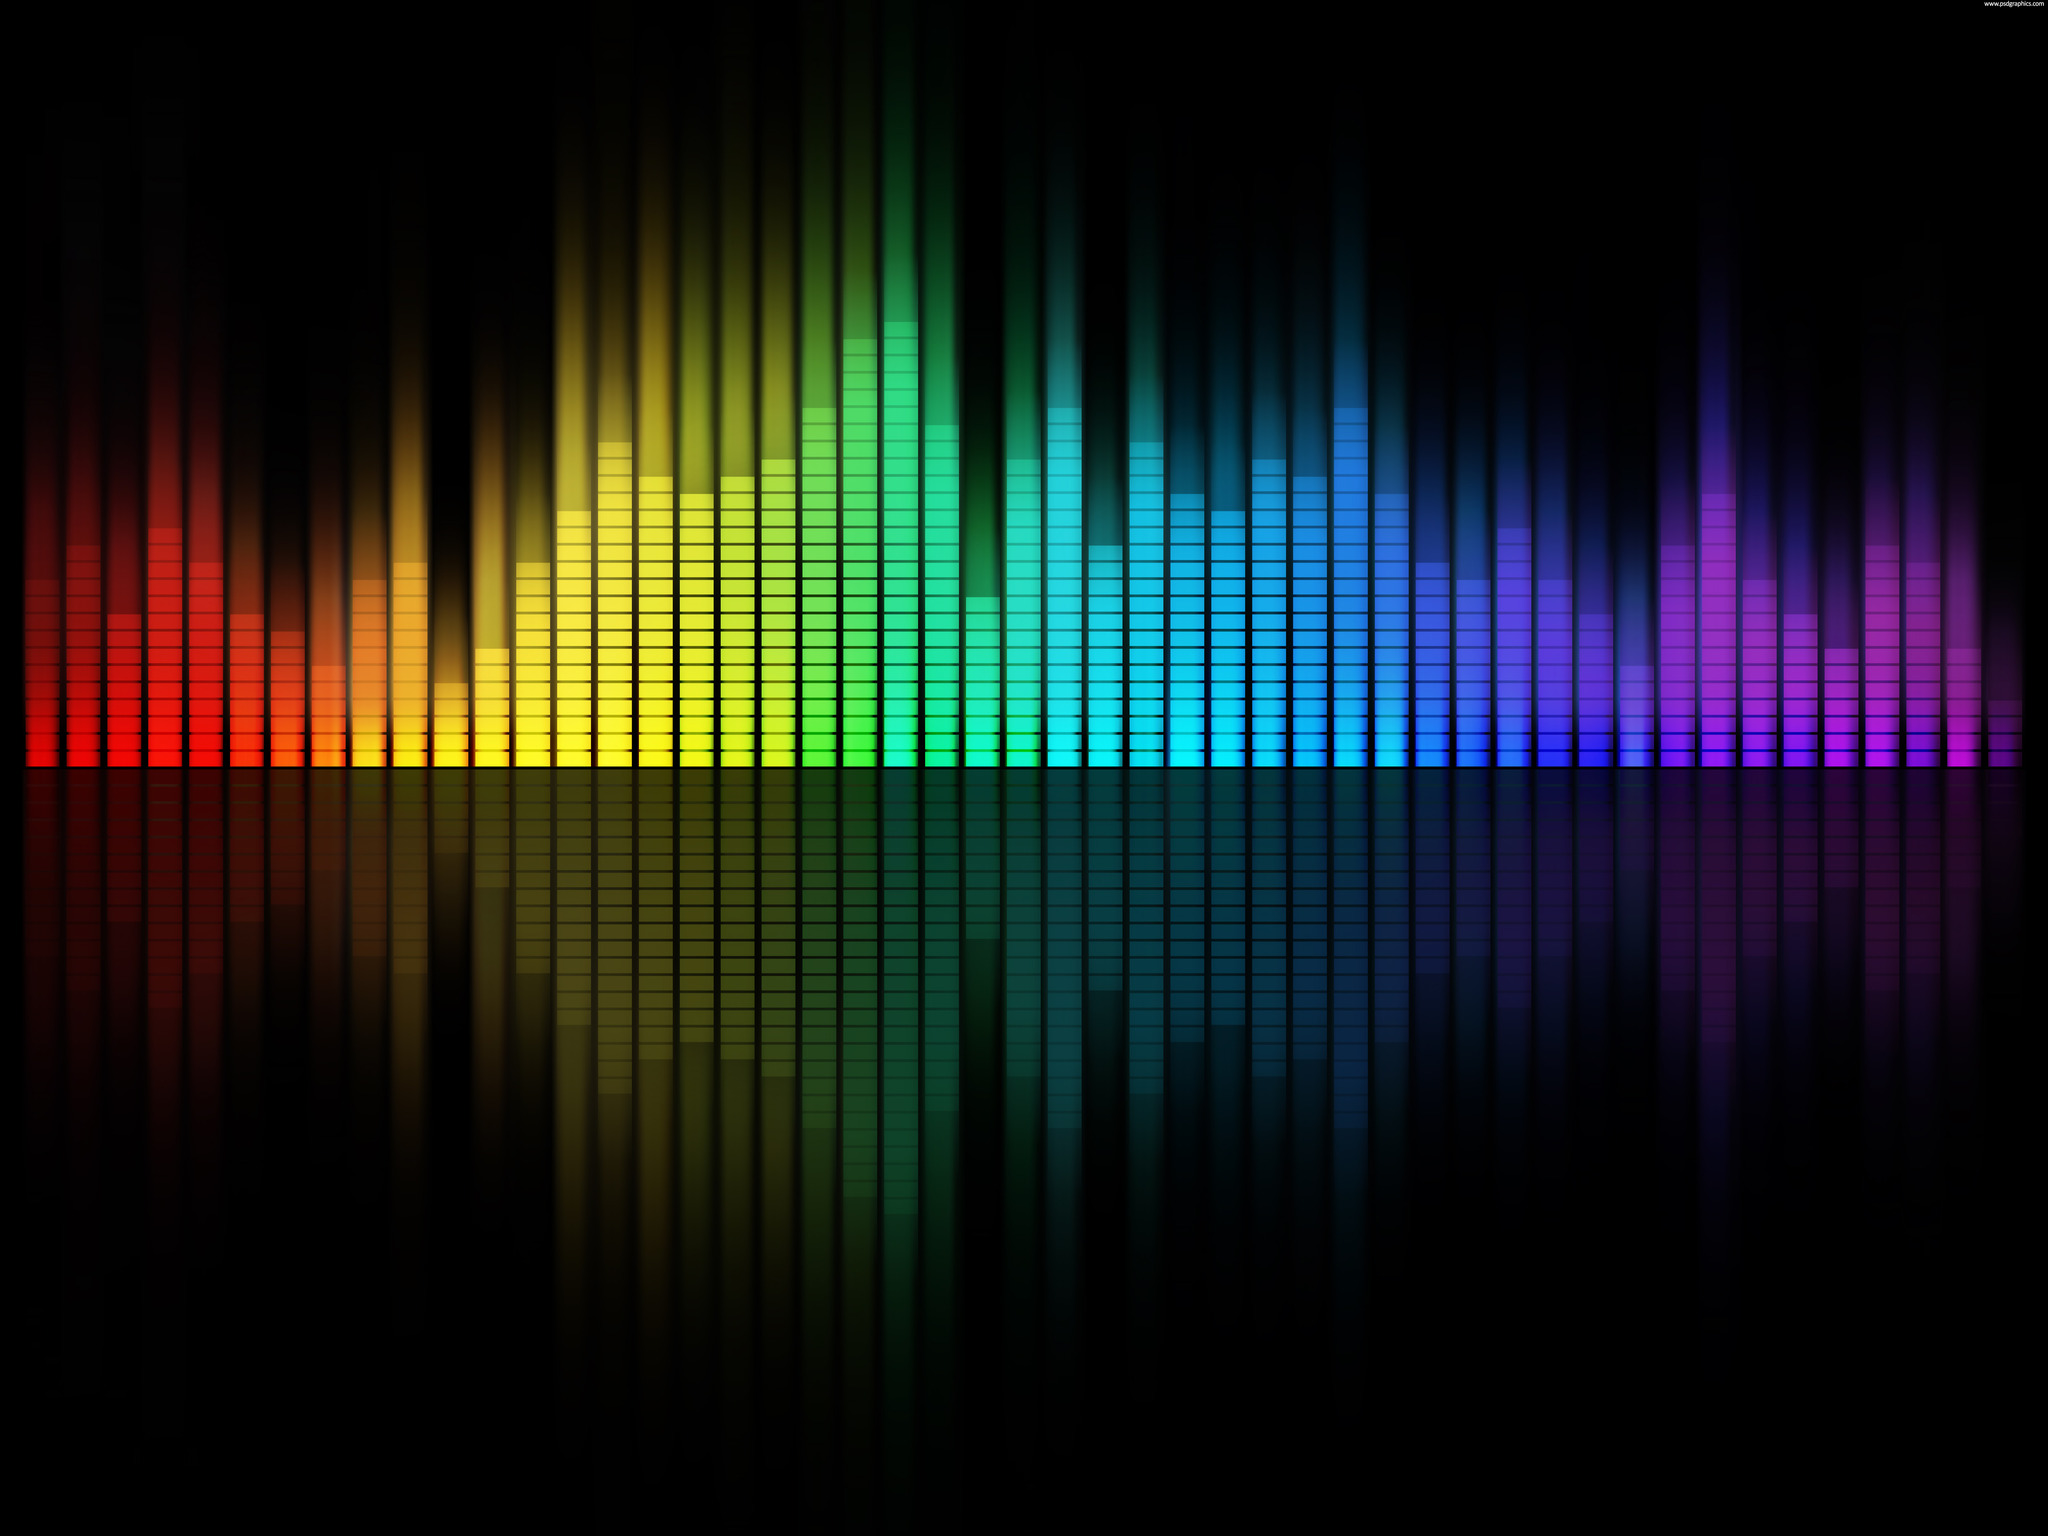 Amazing Music Wallpapers: [Photoshop] 50 Fondos FullHD Para Vos ¡Nuevos!